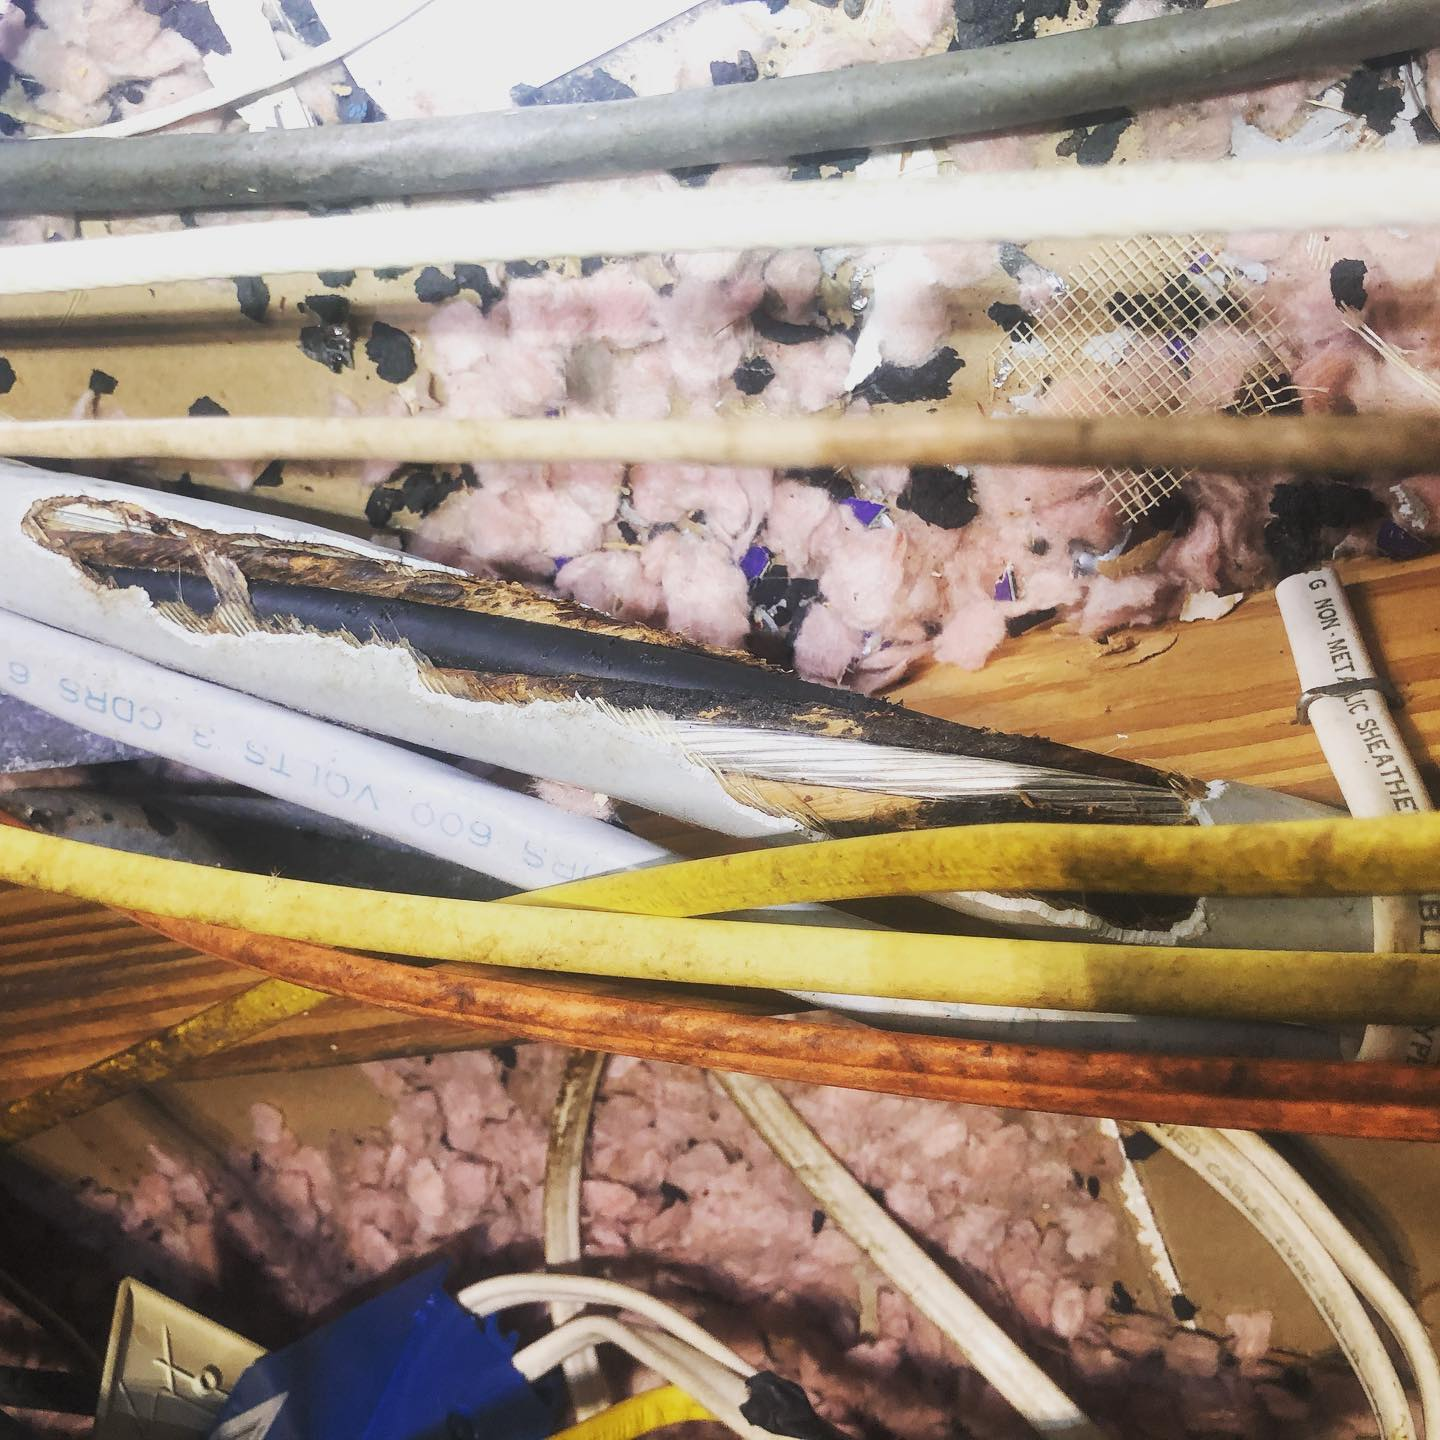 Image of Orlando animal damage in attic needing new wires